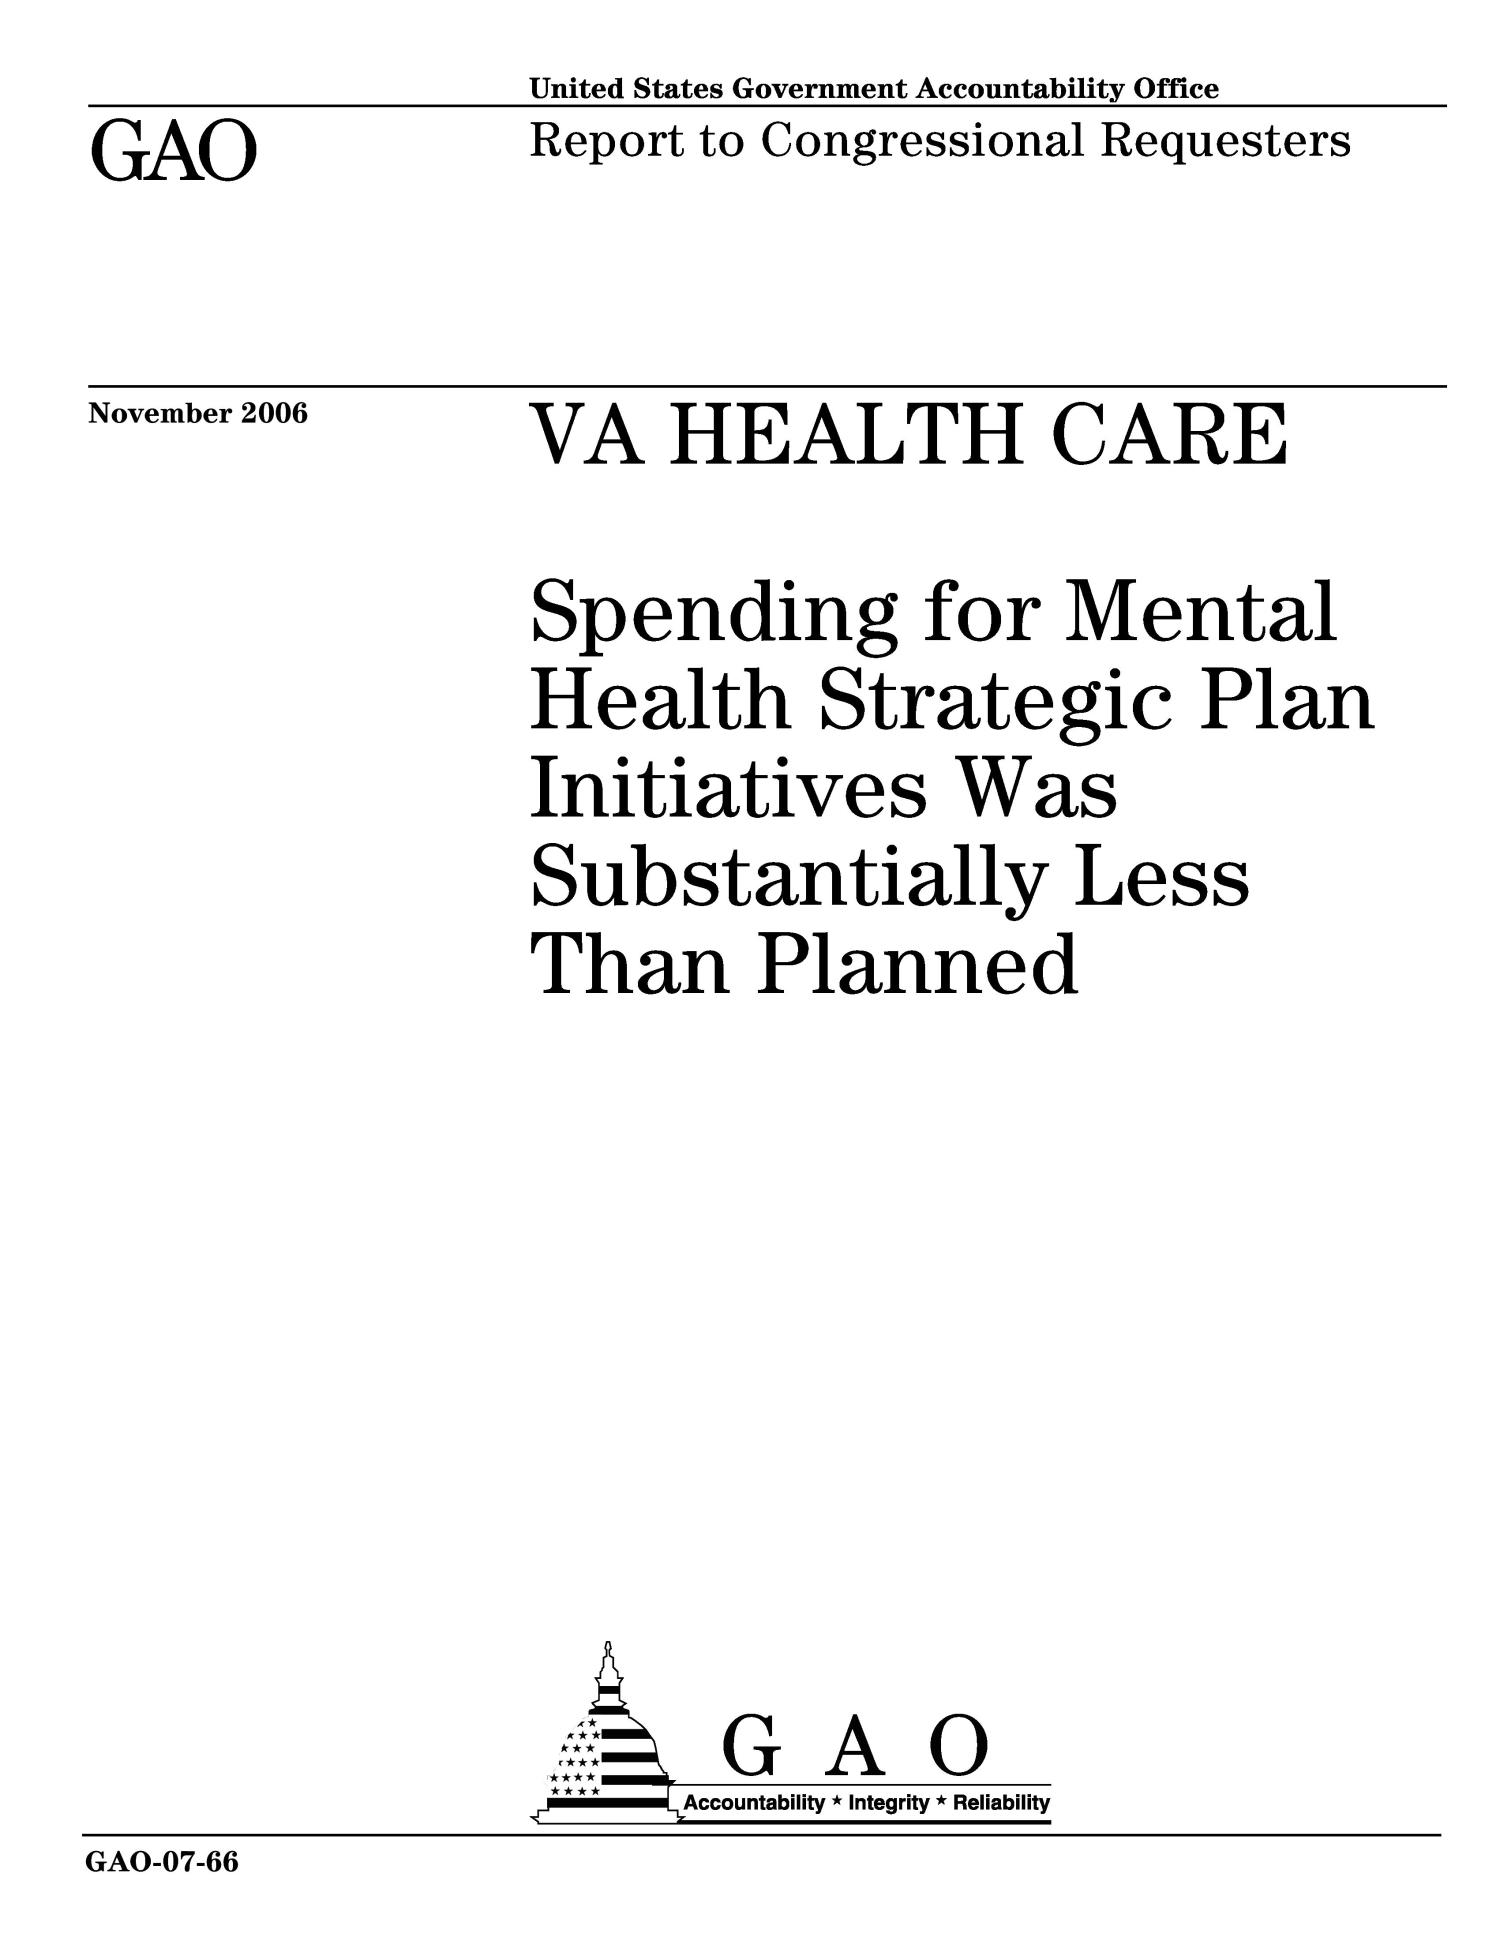 VA Health Care: Spending for Mental Health Strategic Plan Initiatives Was Substantially Less Than Planned                                                                                                      [Sequence #]: 1 of 39